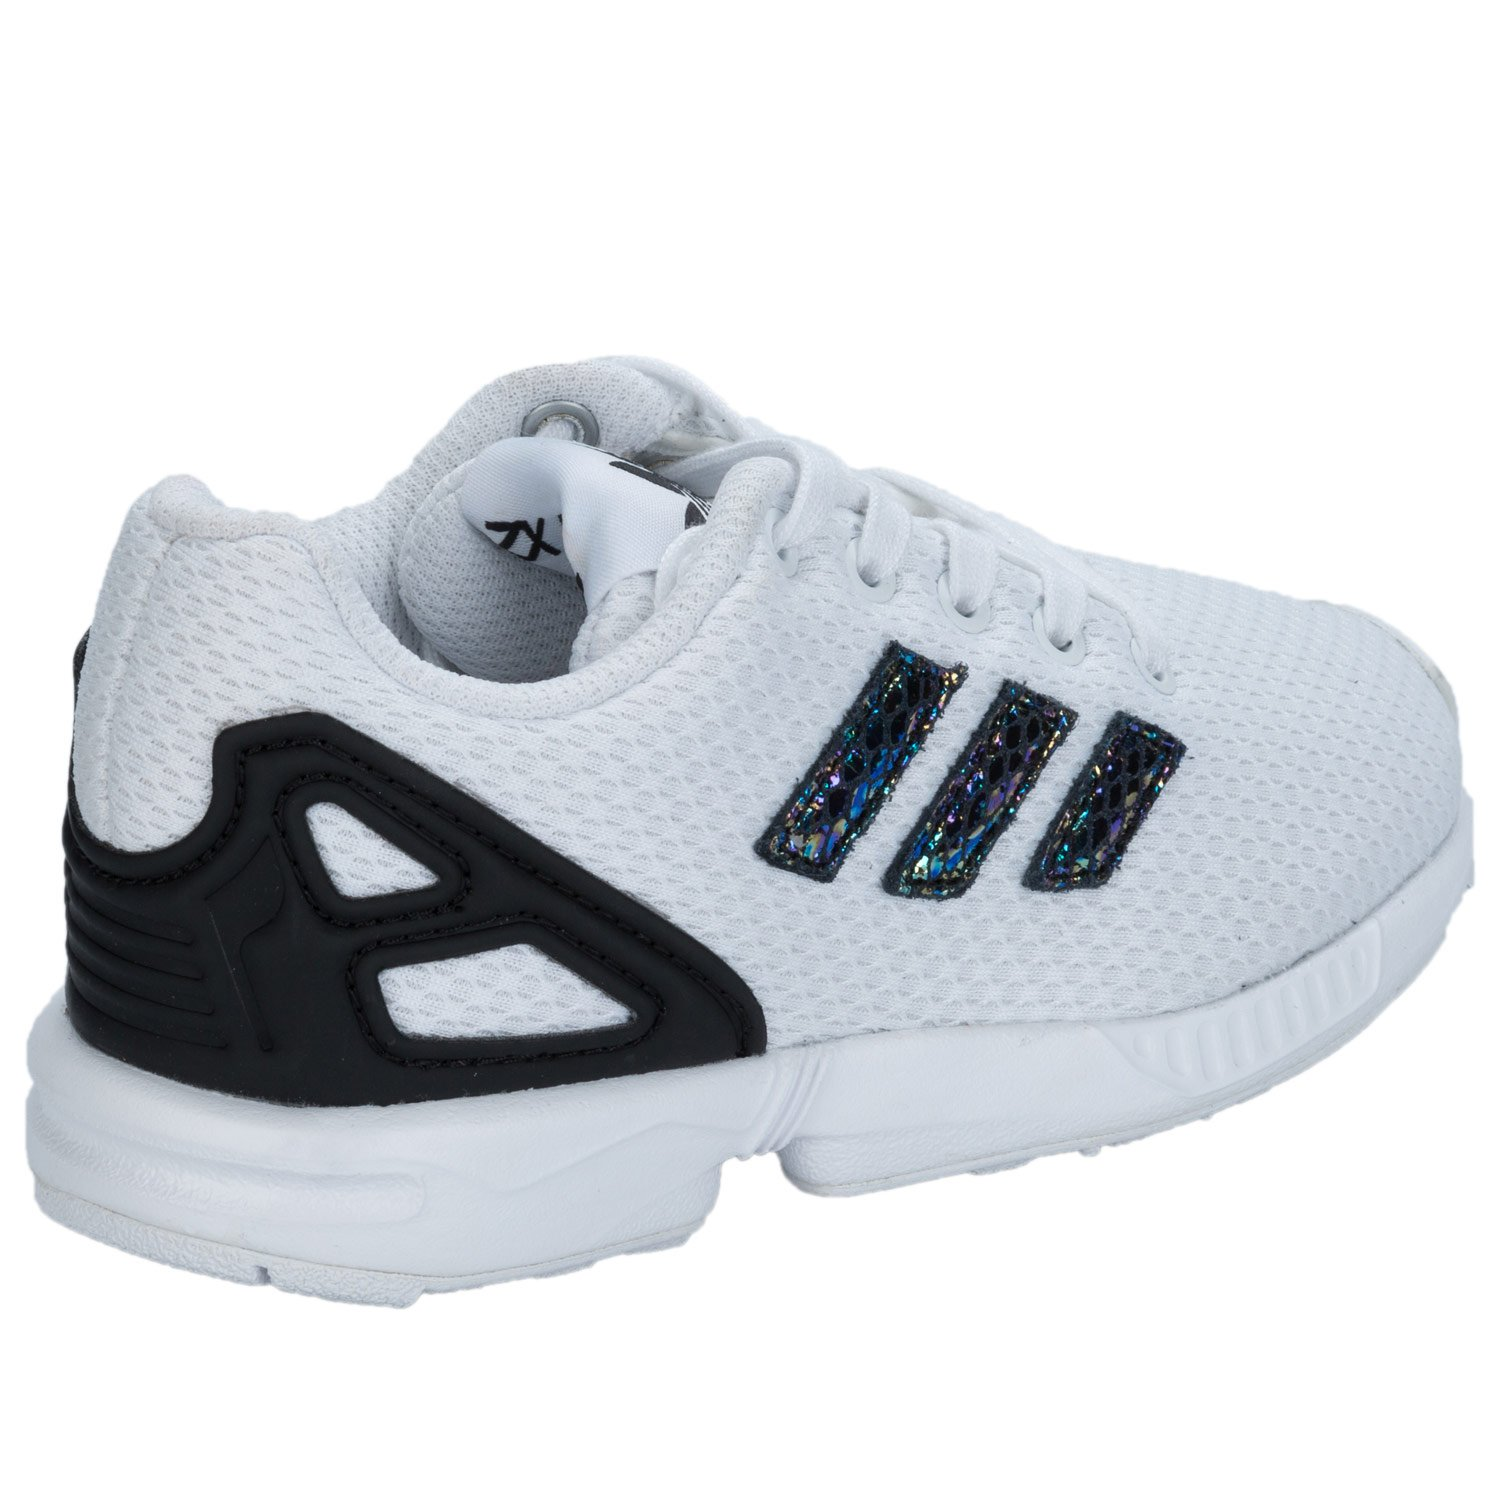 31df7b89fd2f2 adidas Children Girls Originals Zx Flux Metallic Snake Trainers in White   Amazon.co.uk  Shoes   Bags